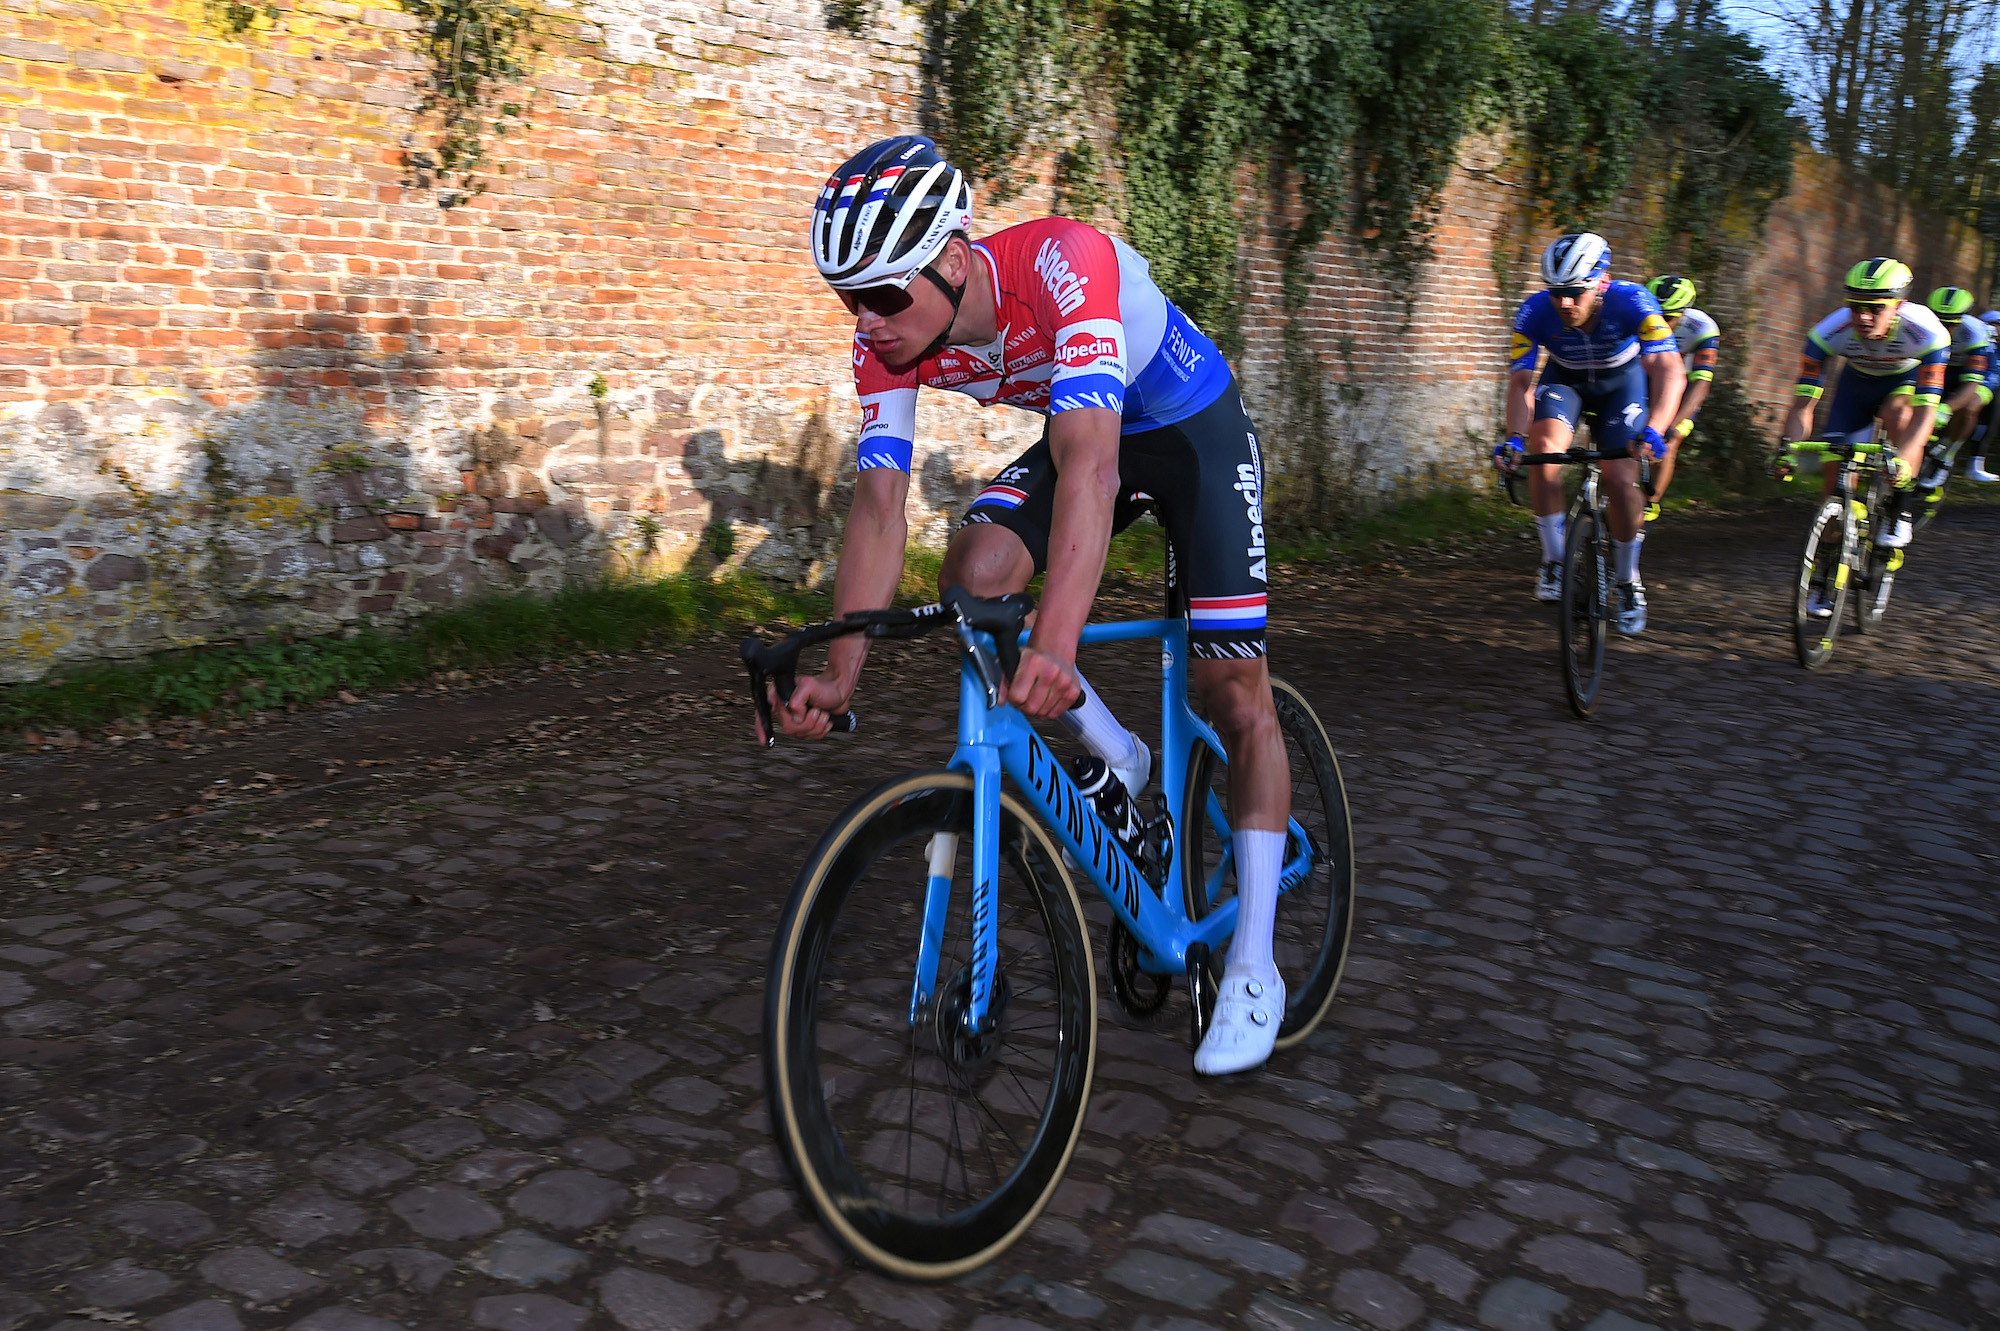 'My handlebars broke on the long cobble sector': Mathieu van der Poel on his misfortune in Le Samyn final - Cycling Weekly